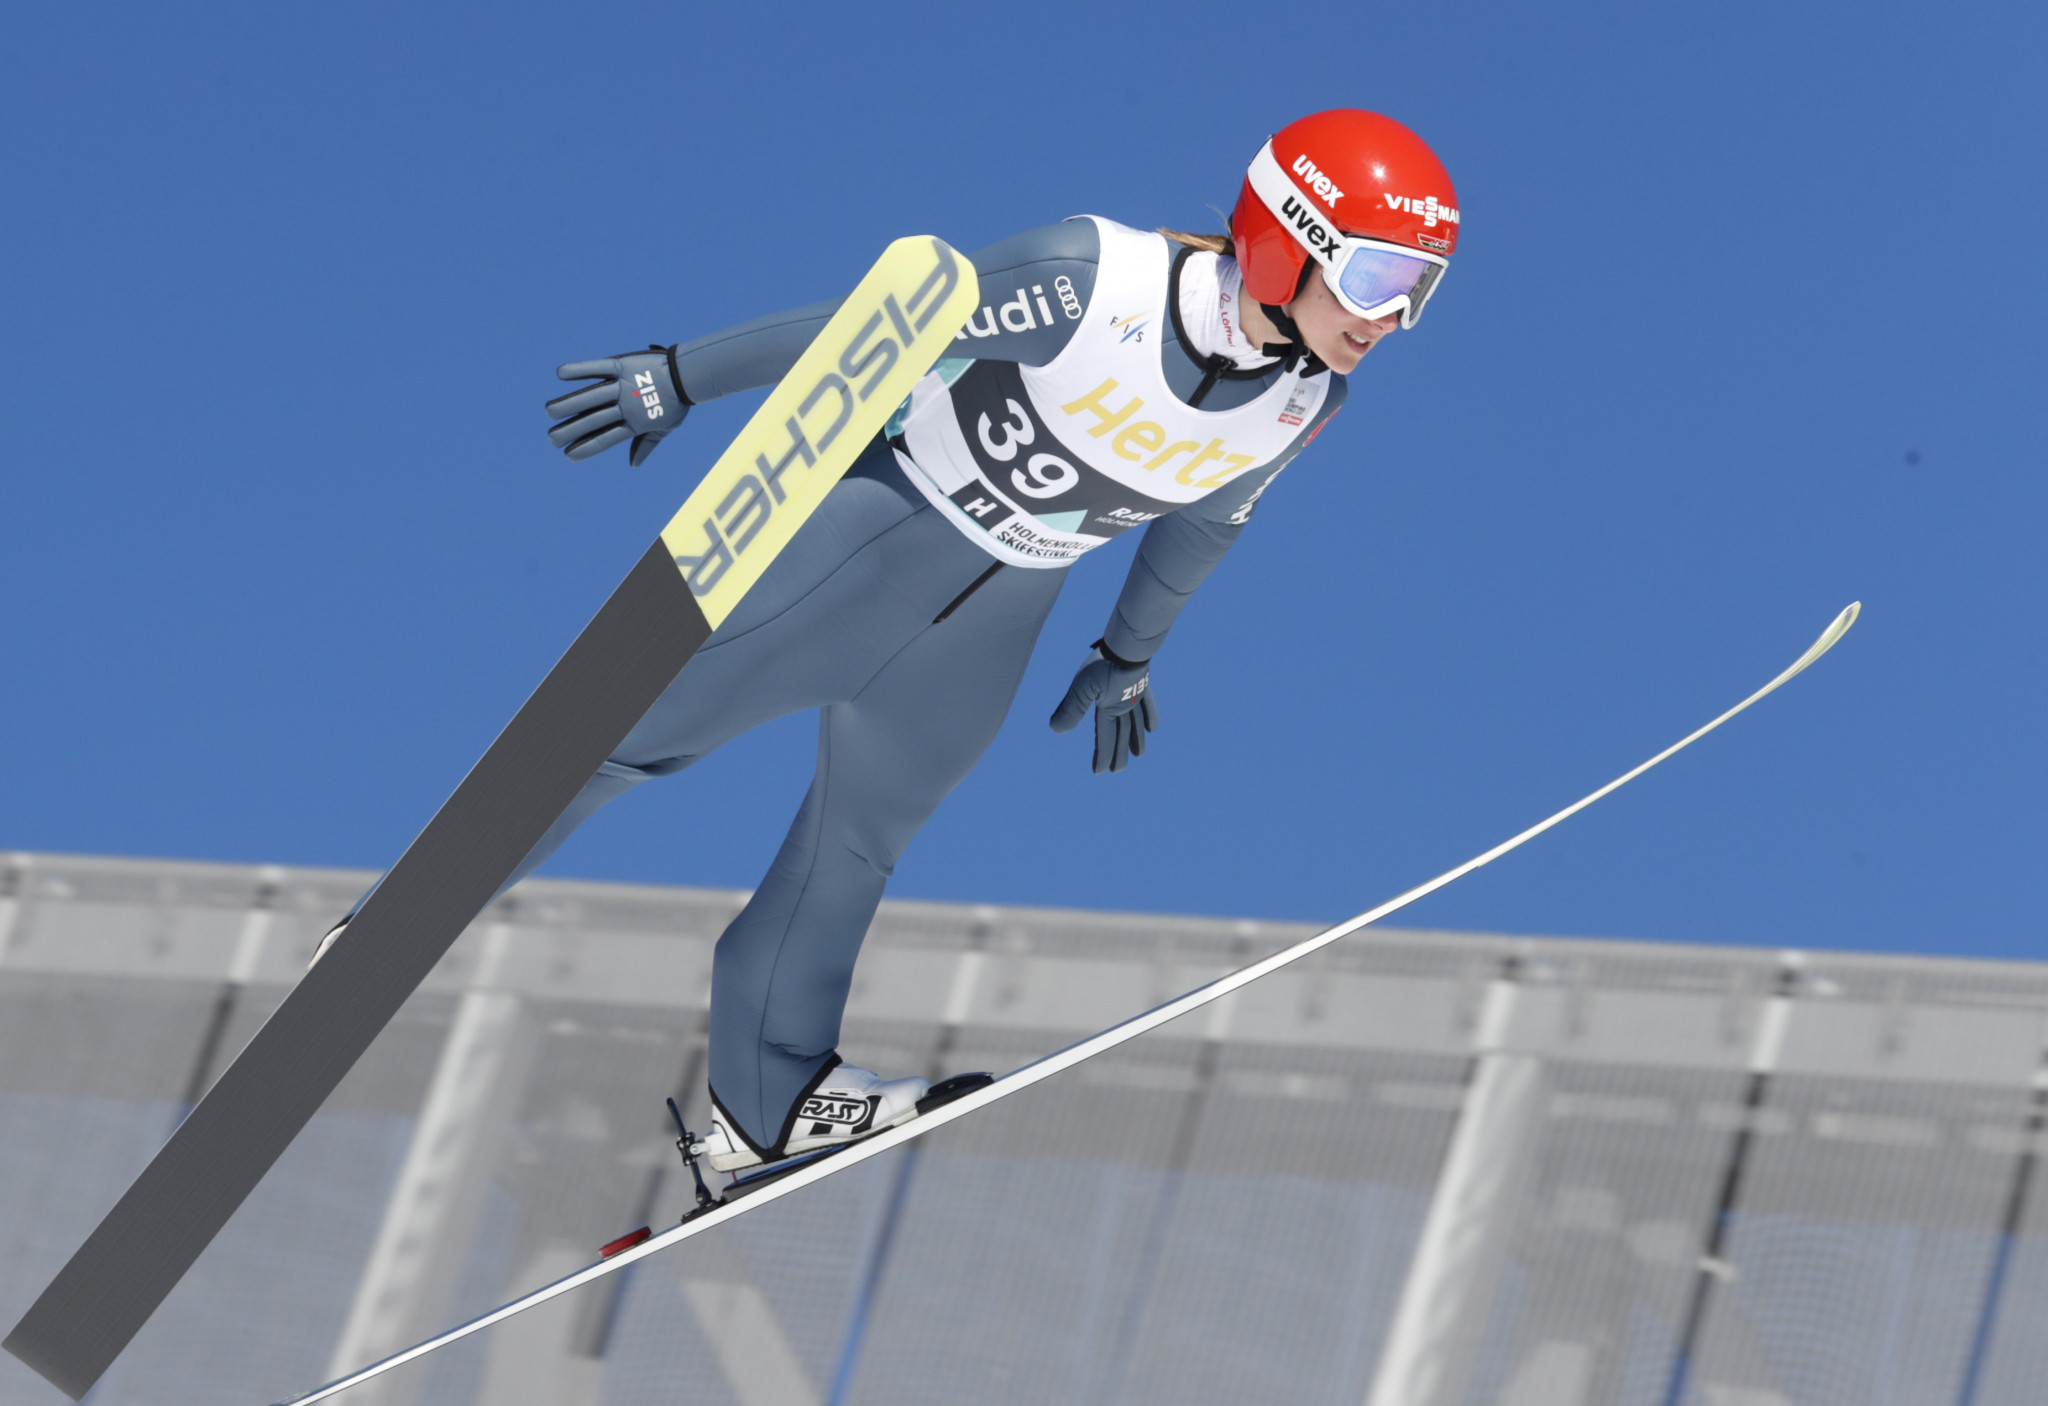 Katharina Althaus is expected to be a main contender at the FIS Ski Jumping World Cup event in Lillehammer ©Getty Images